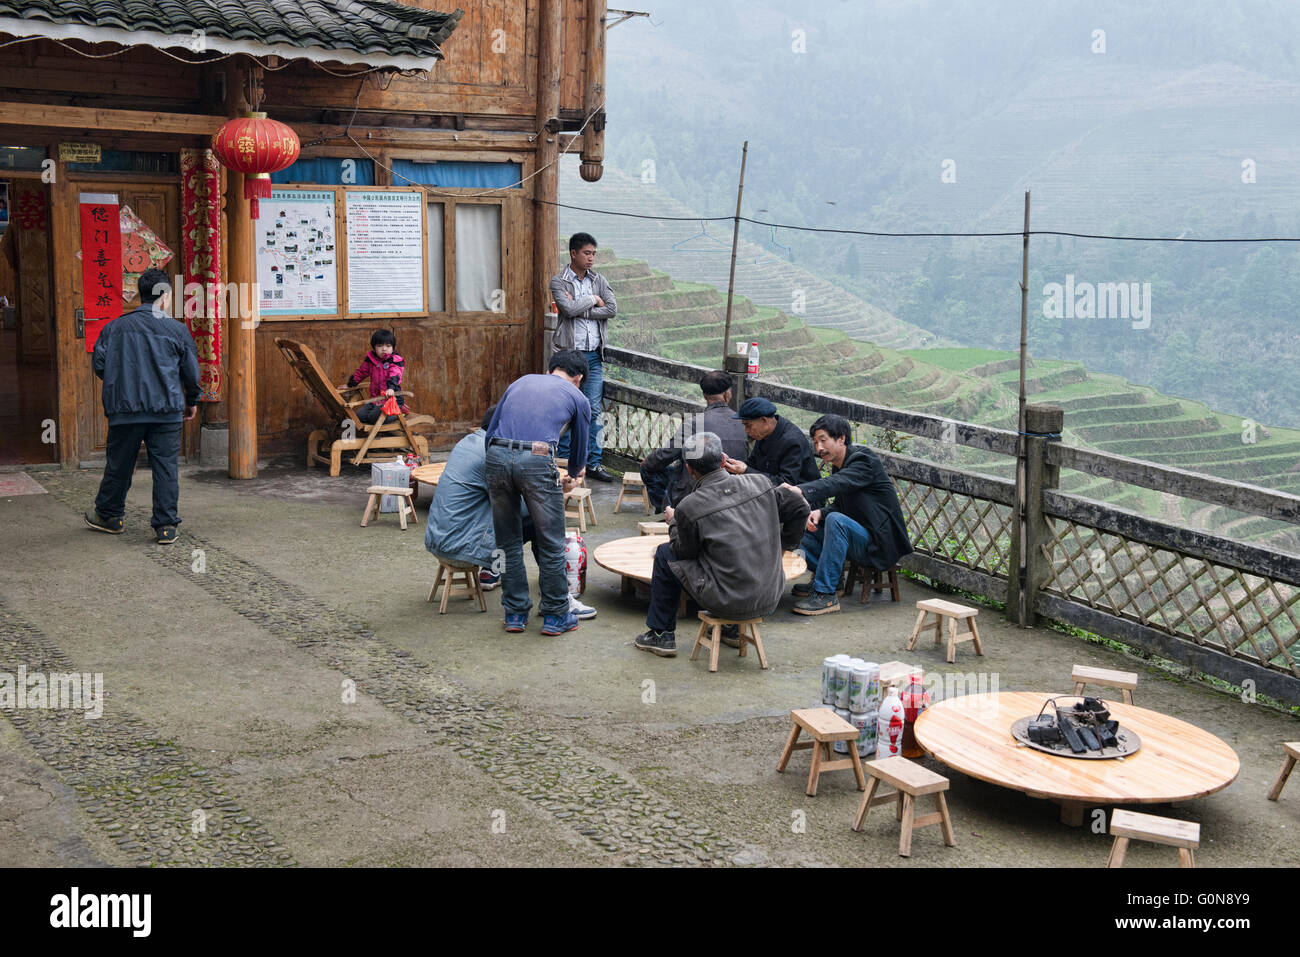 Traditional life along the rice terraces of Jinkeng, Guangxi Autonomous Region, China - Stock Image